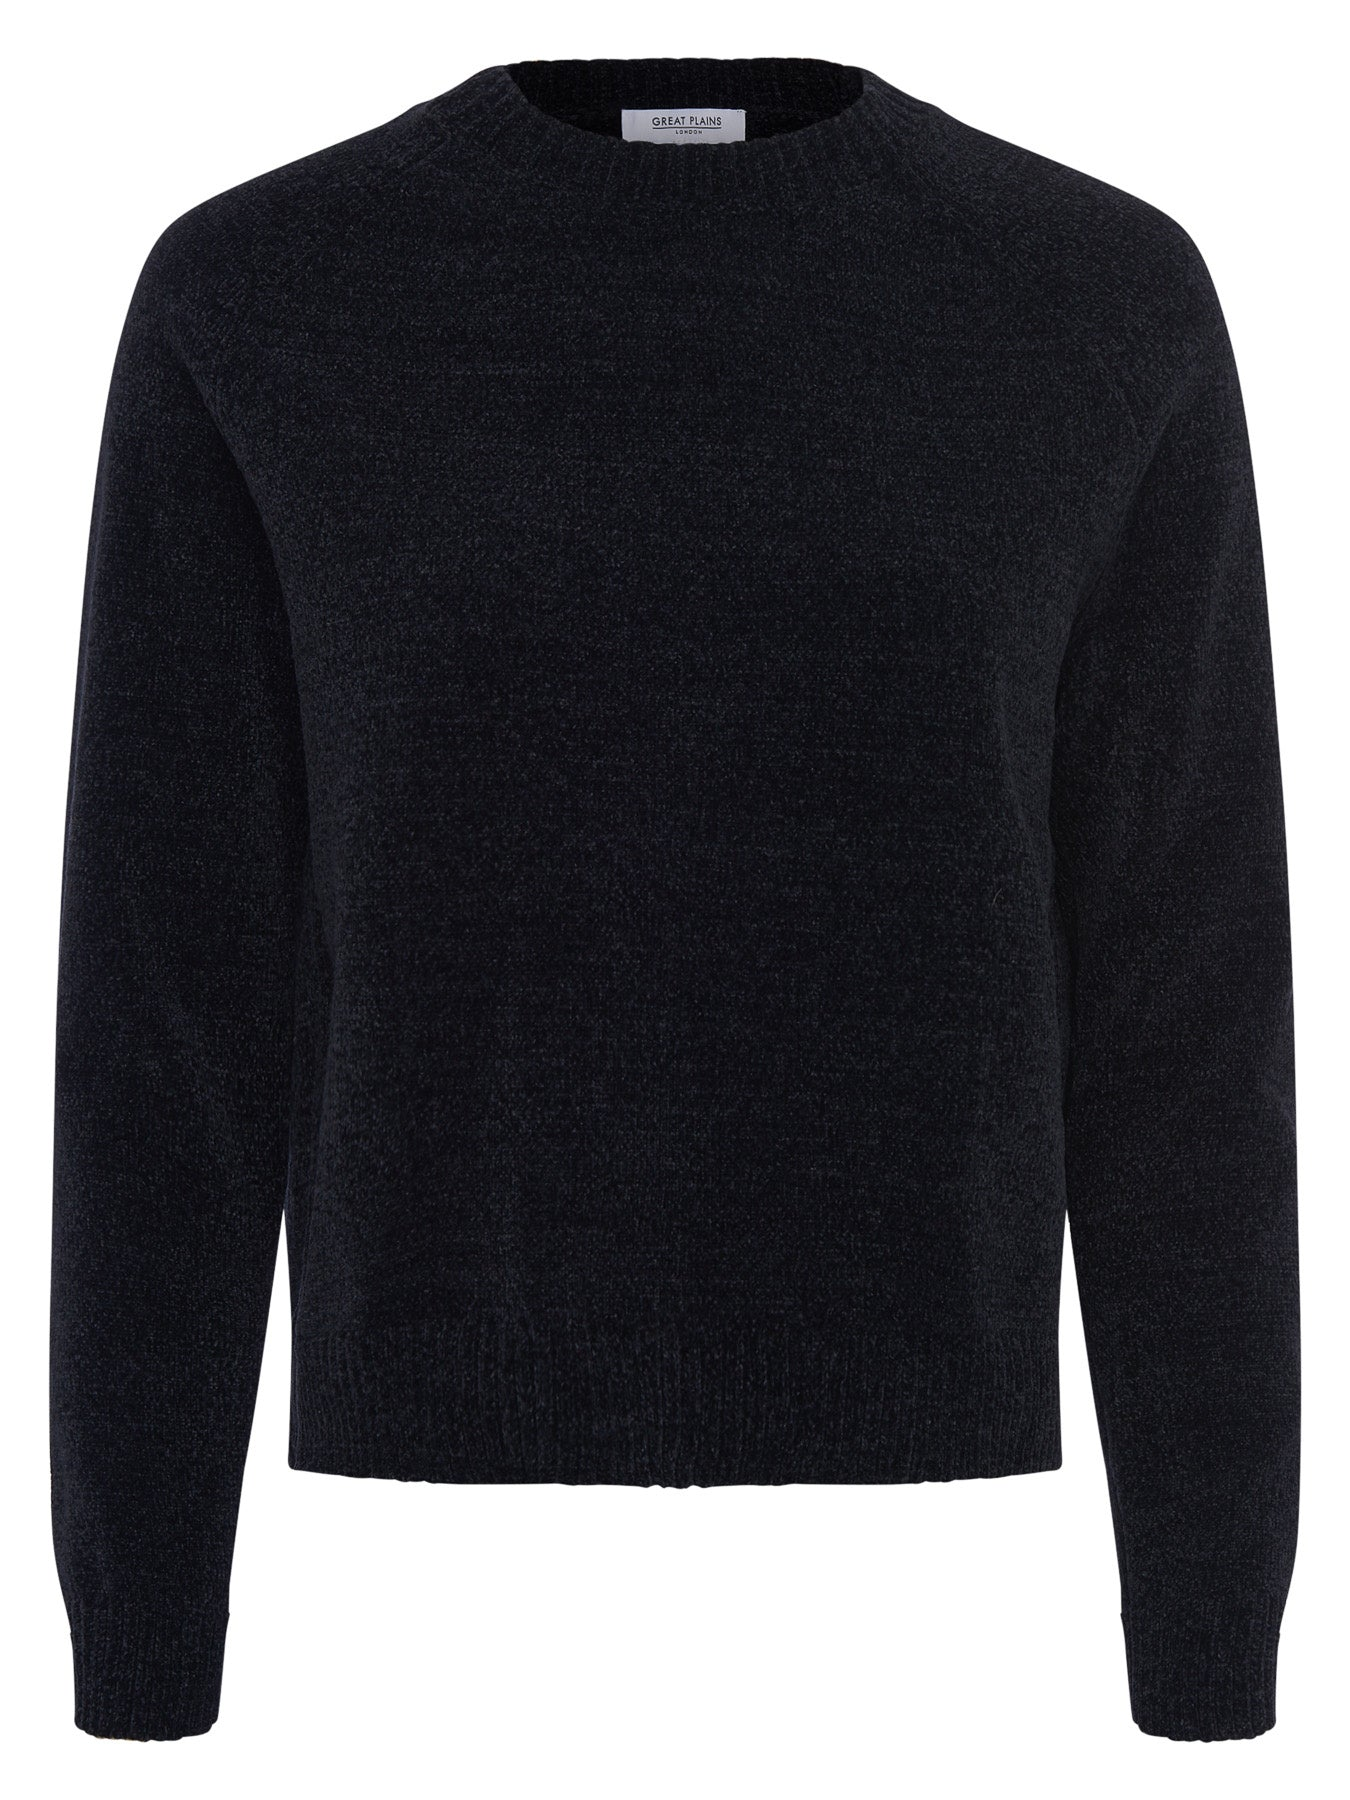 Great Plains Bethan Knit Crew Neck Jumper for Ladies in Black